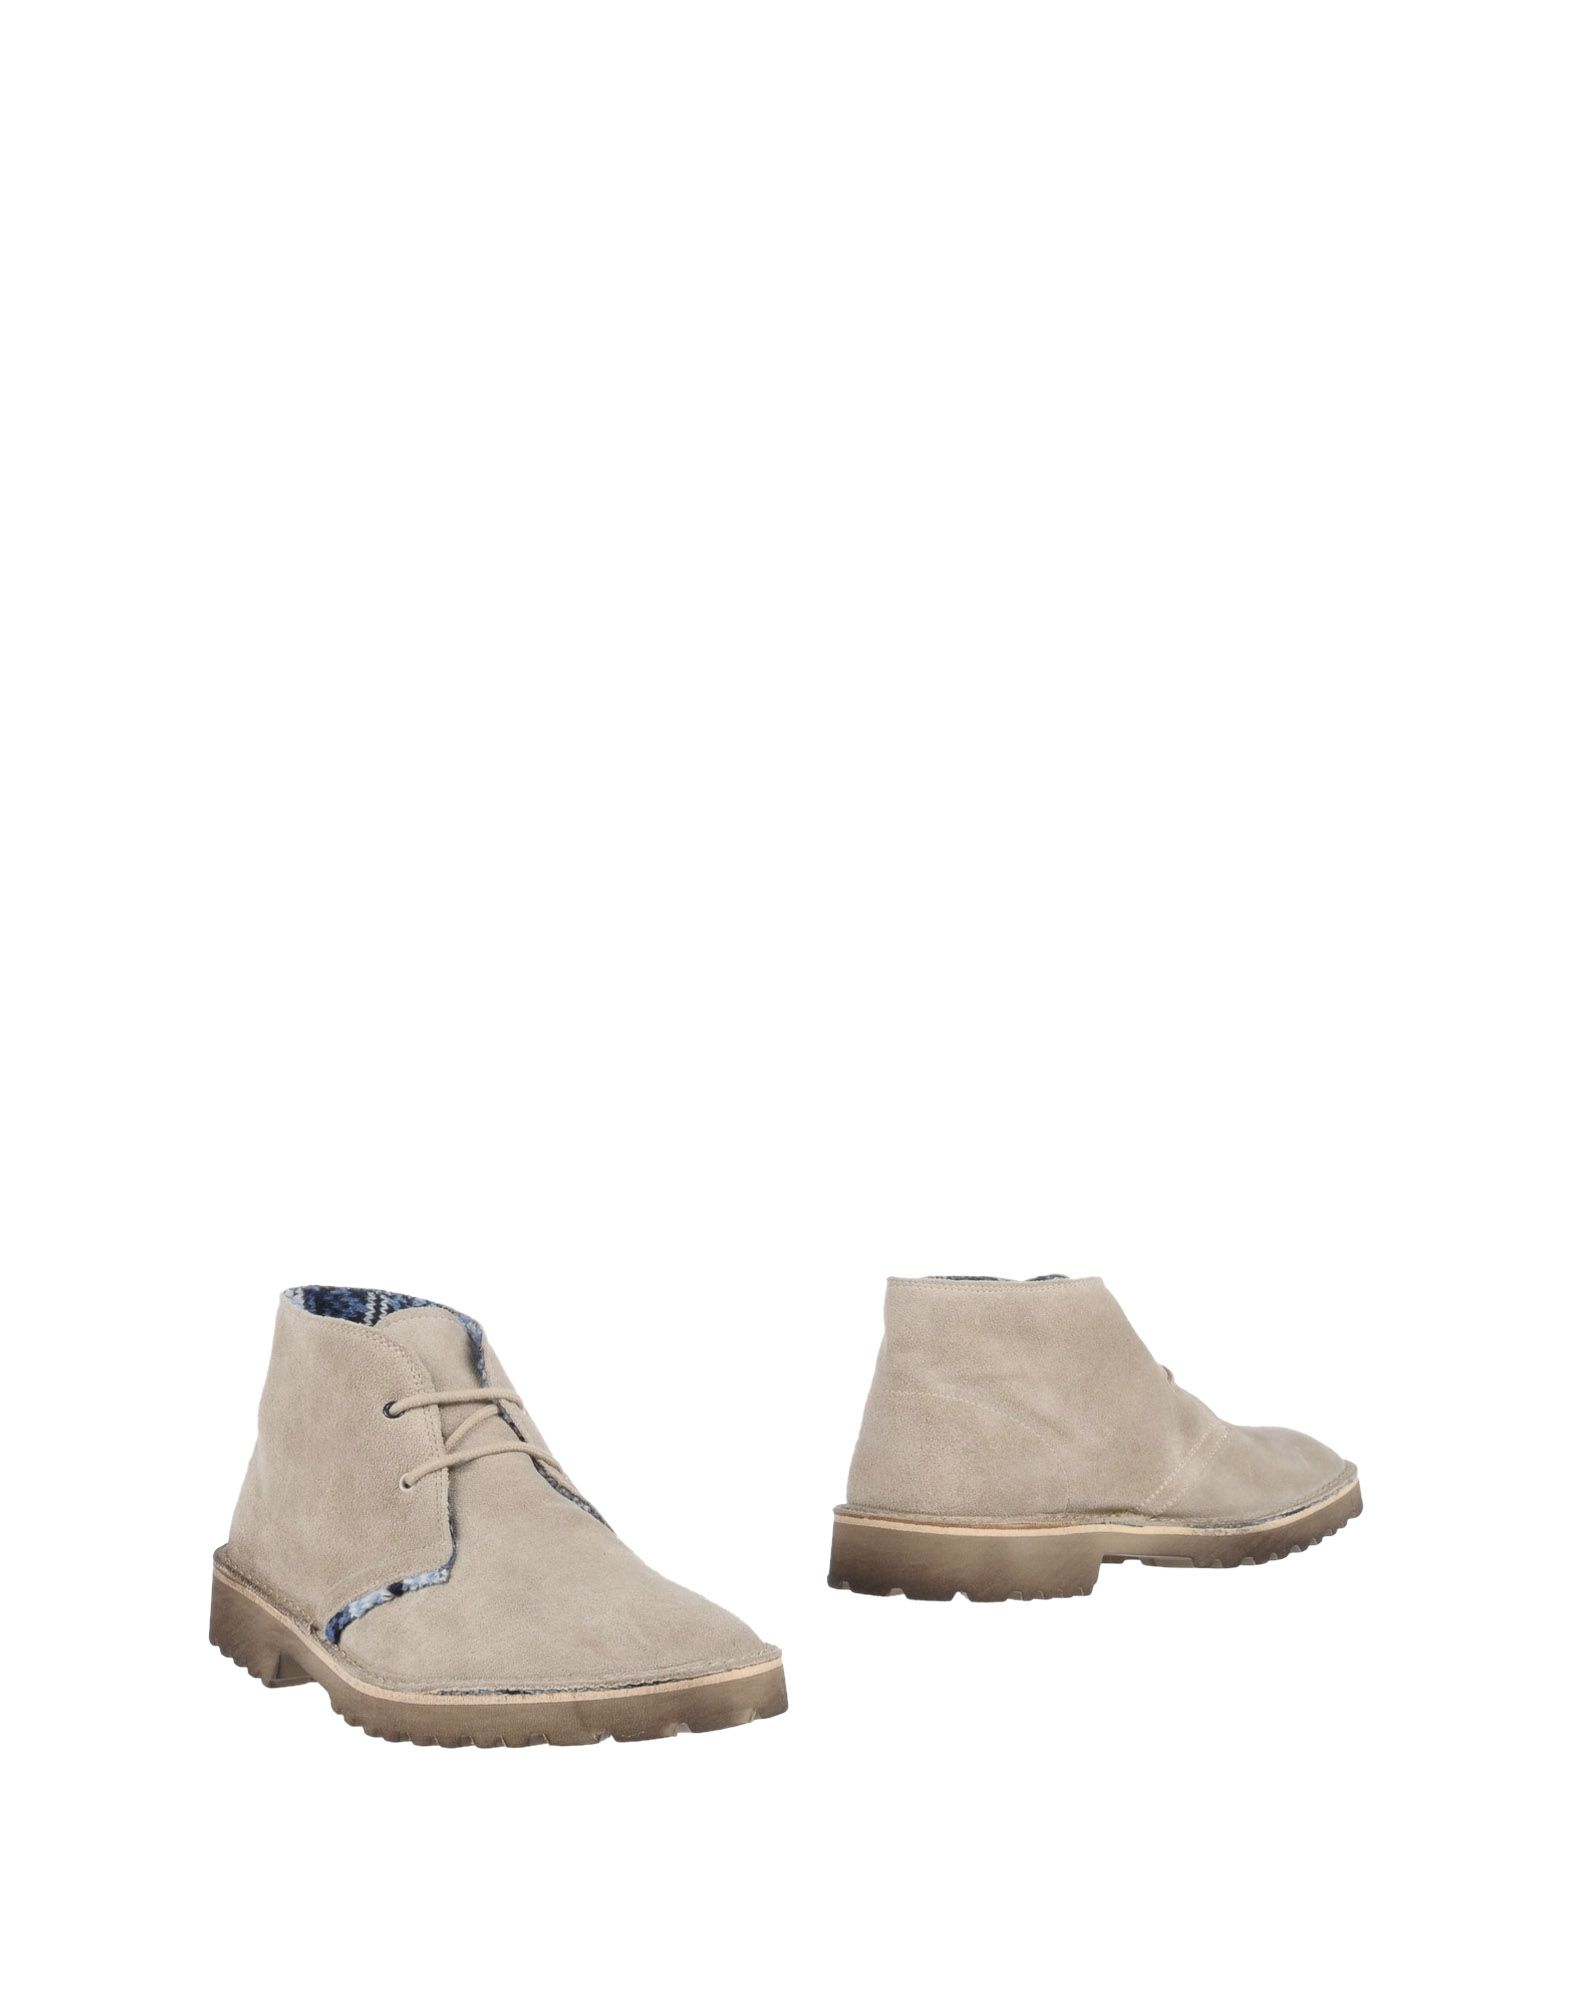 LE CROWN Boots in Beige